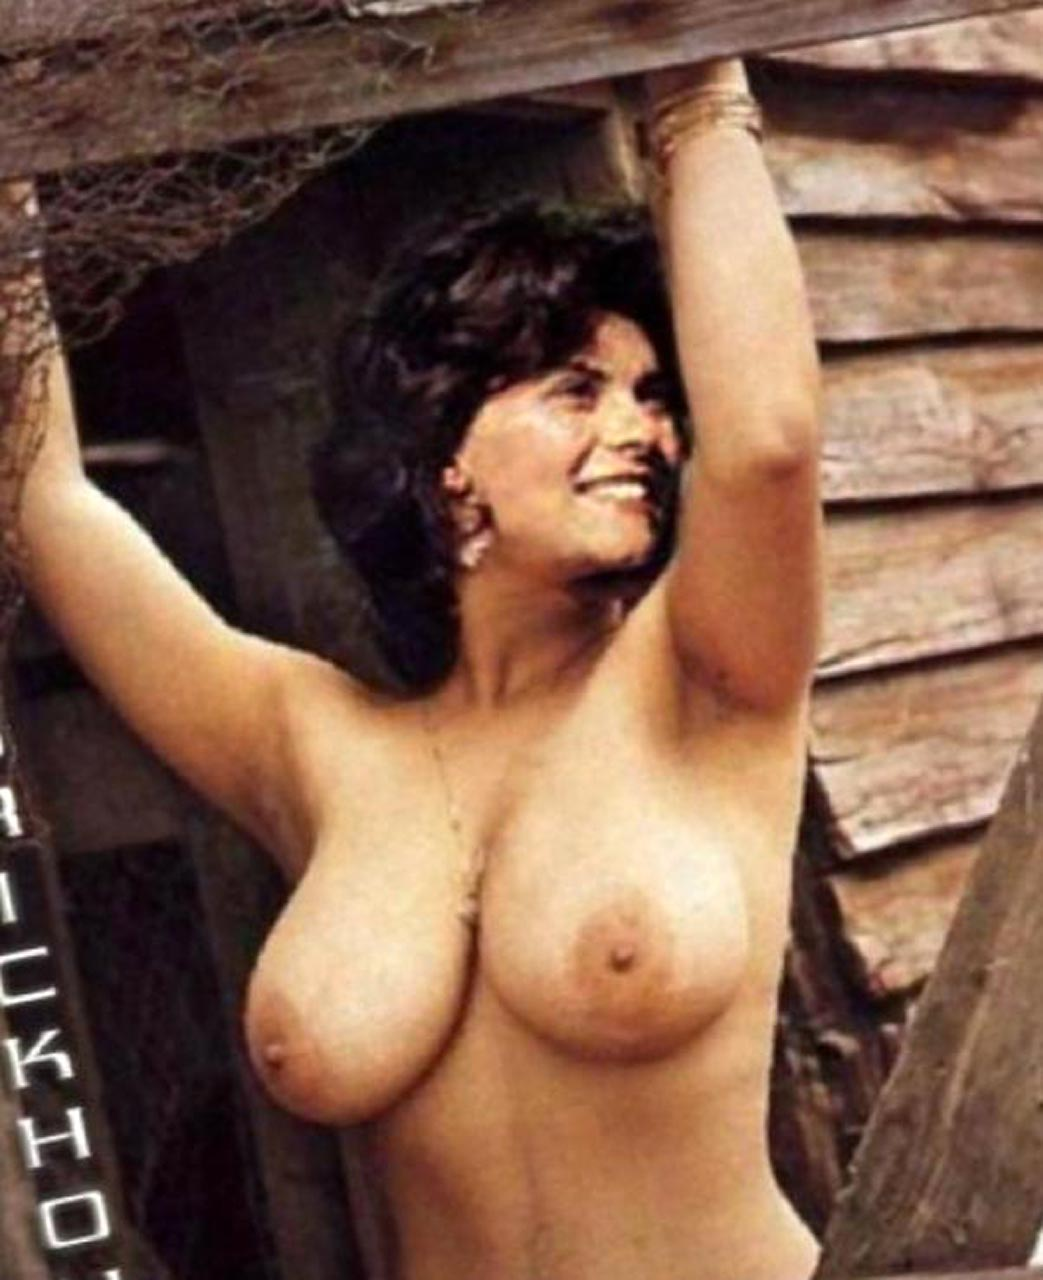 adrienne barbeau blow job